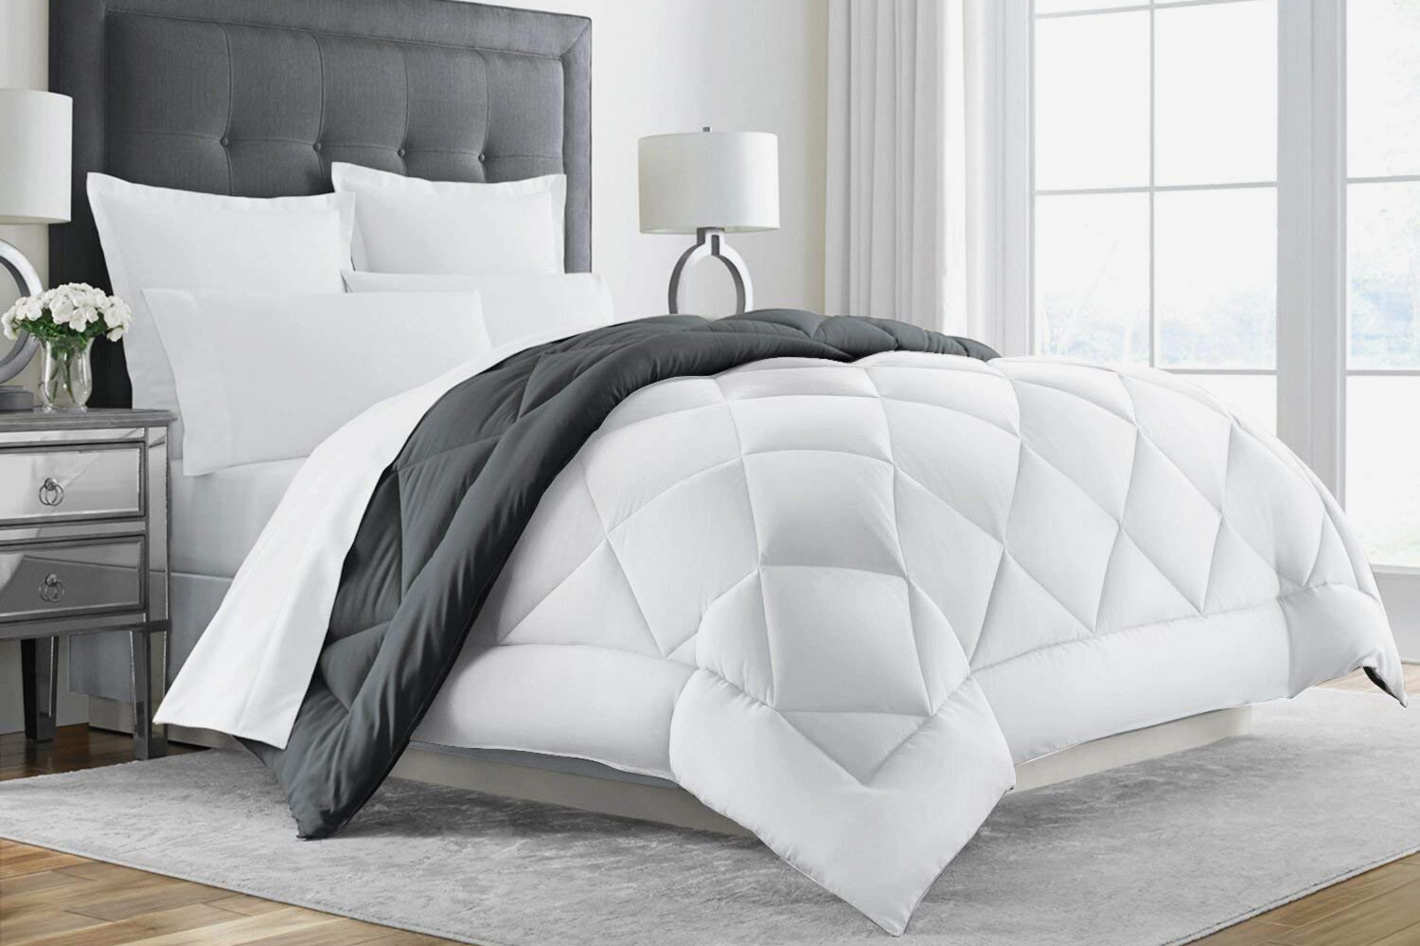 Lightweight Comforter Reviews and Buying Guide by www.snoremagazine.com